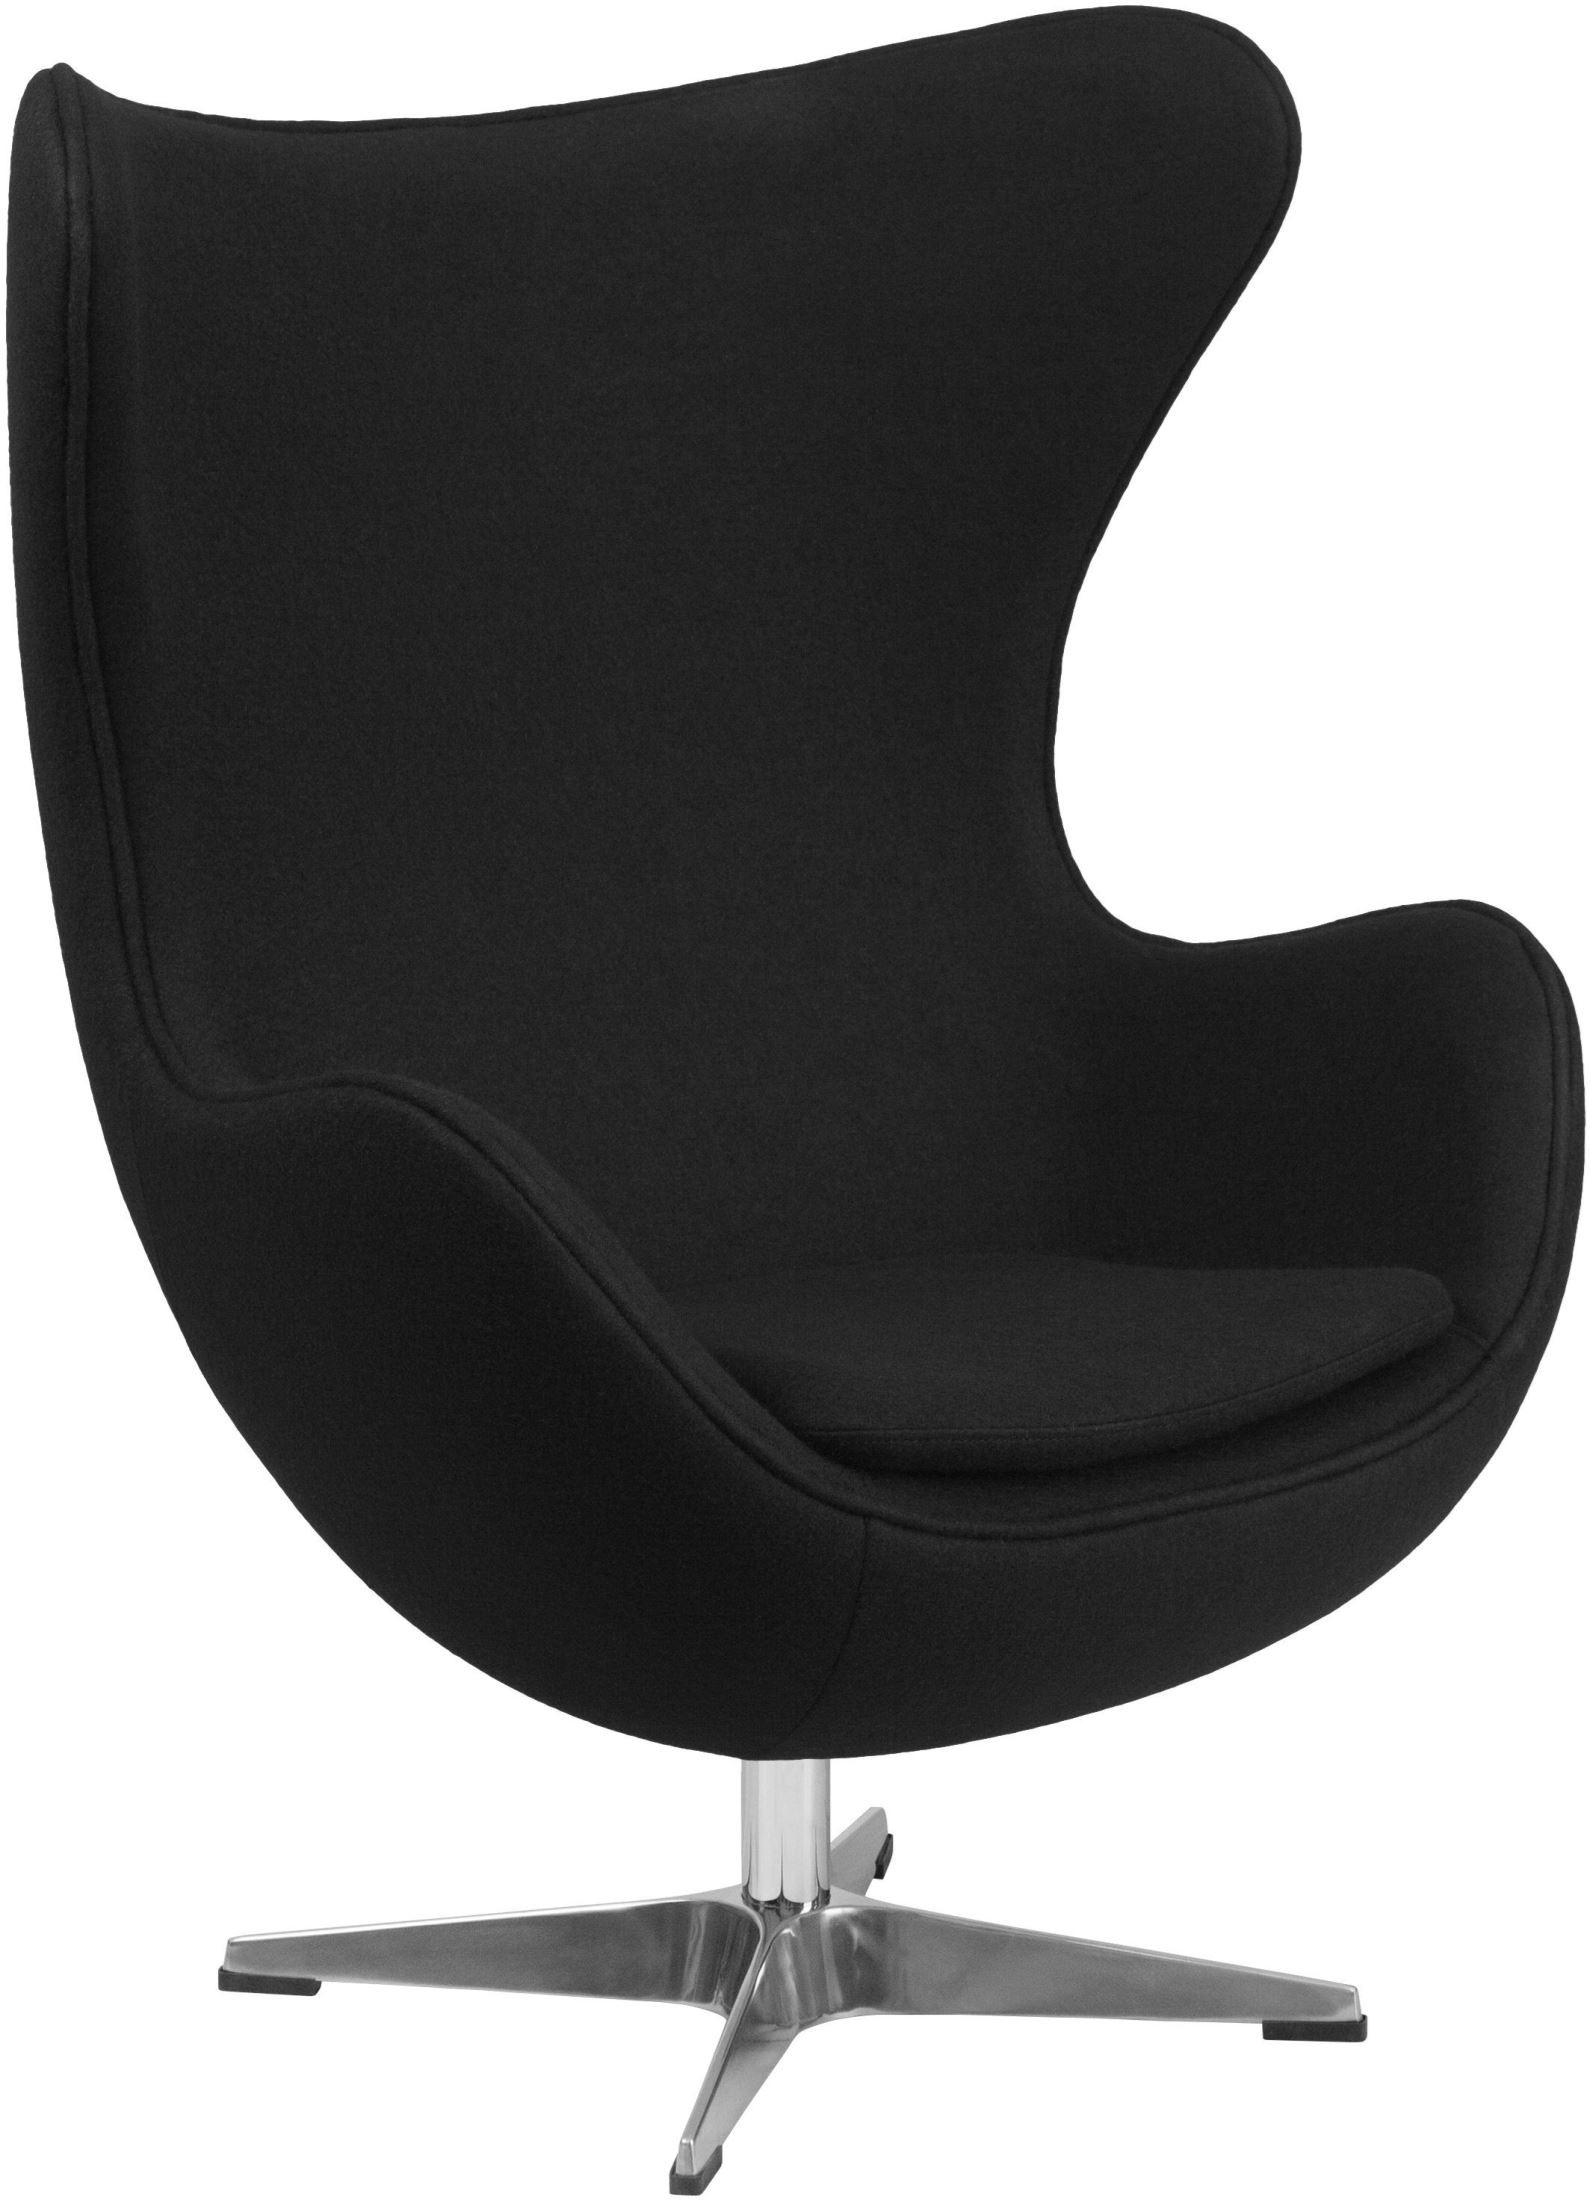 Used Egg Chair Black Wool Fabric Egg Chair From Renegade Coleman Furniture